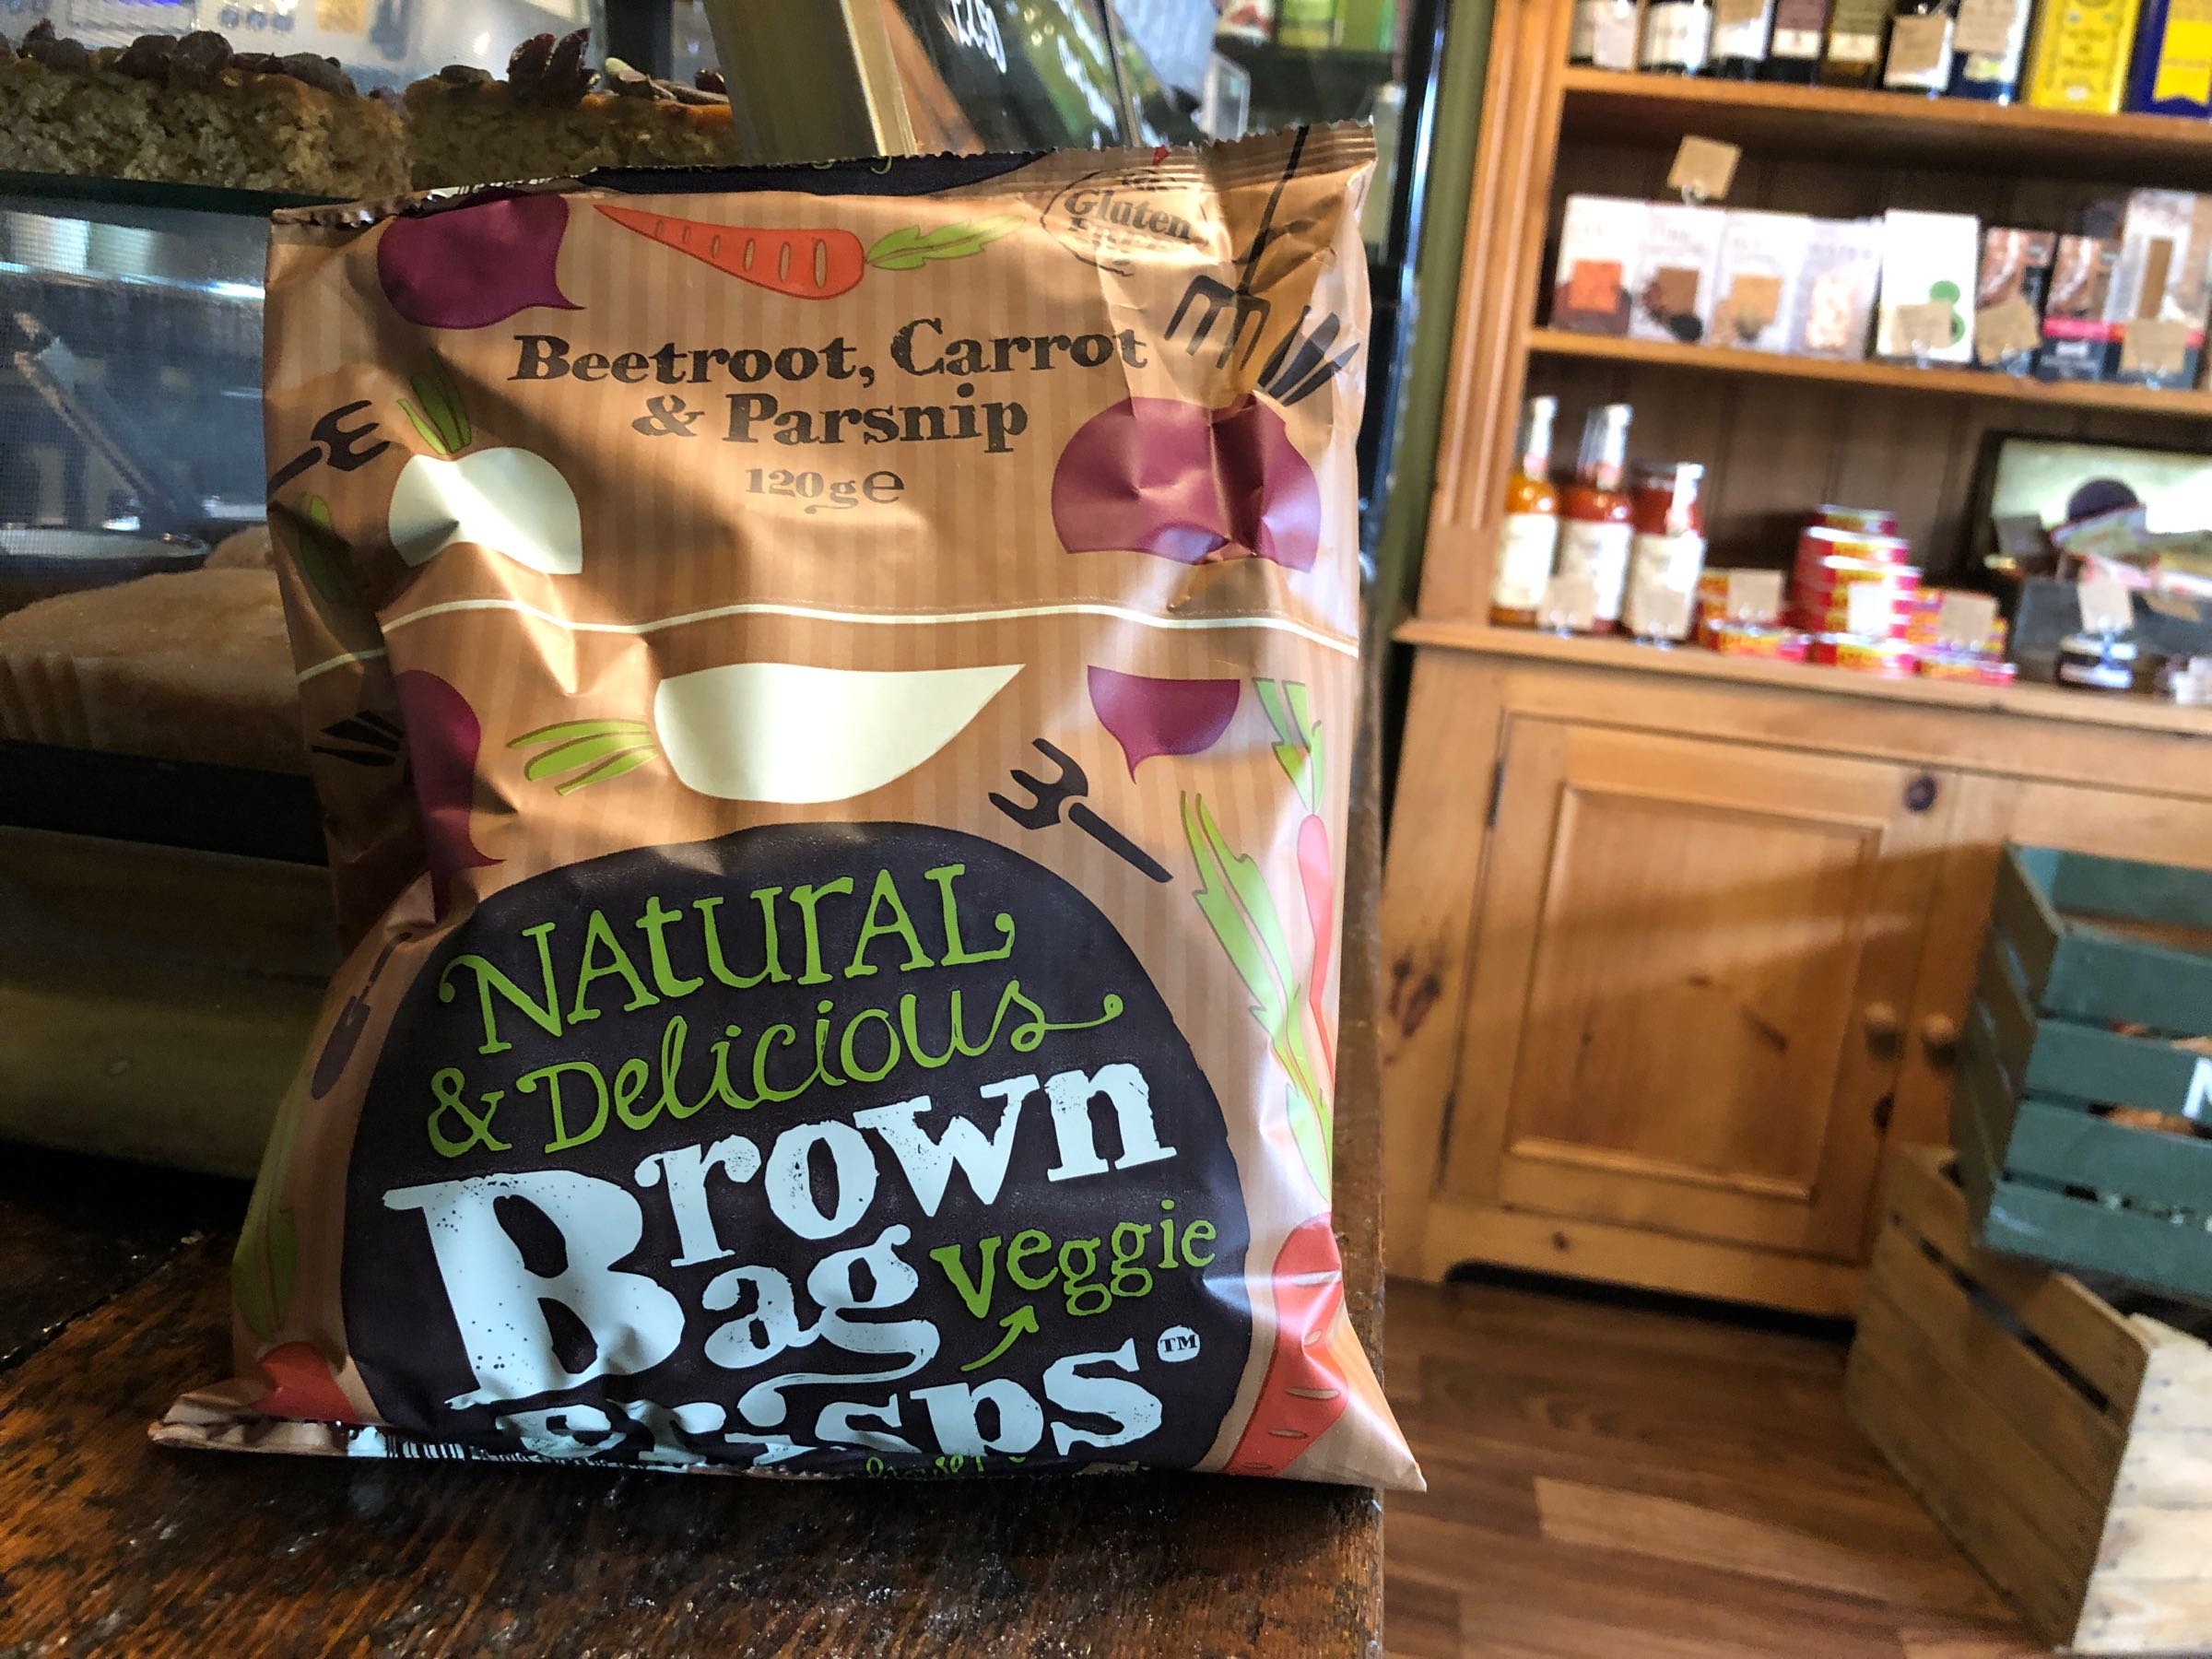 Brown Bag Crisps Veggie Crisps 120g